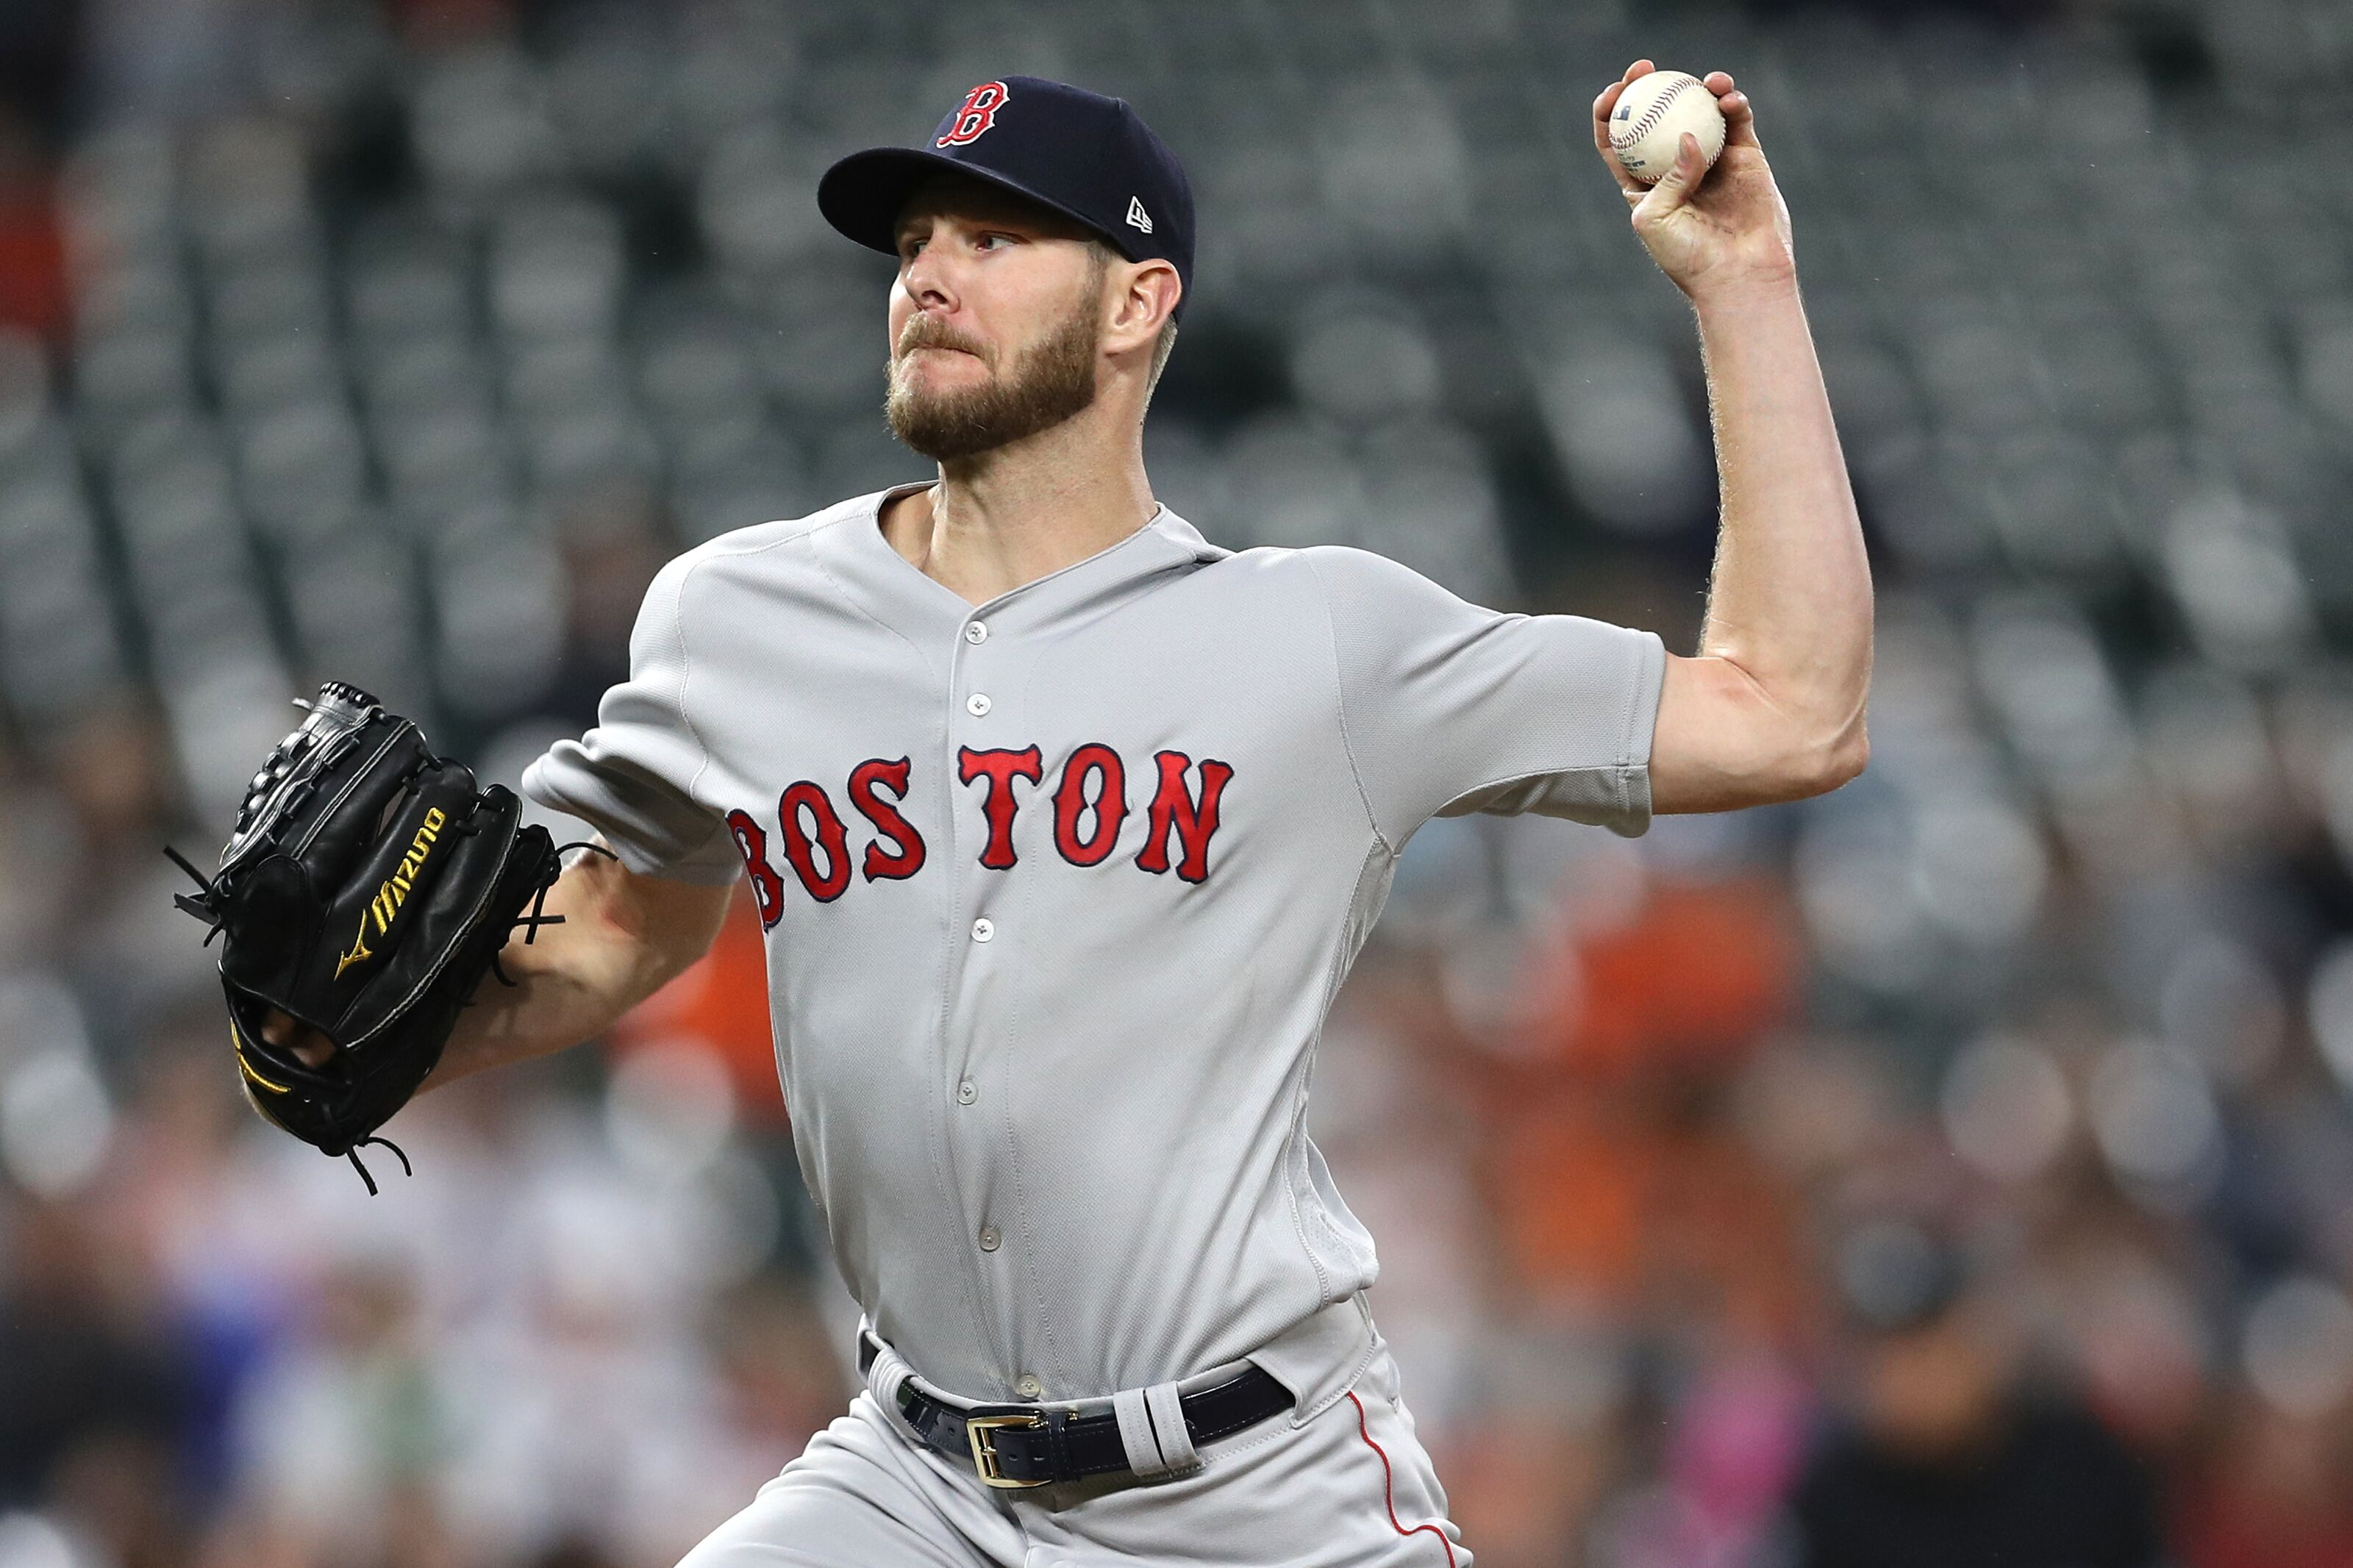 Red Sox News: Chris Sale's elbow is fine entering spring training